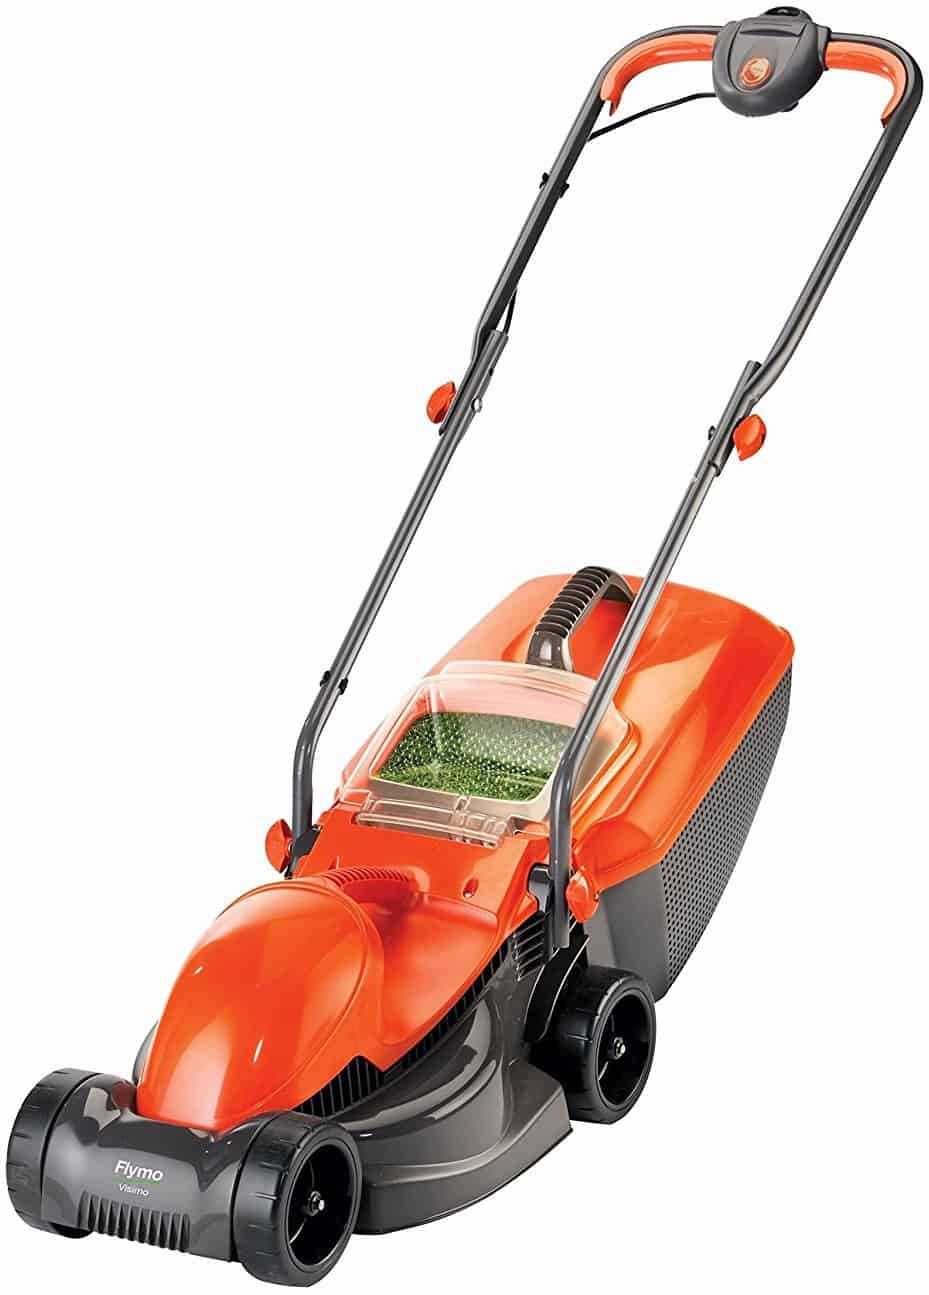 Best Corded Electric Lawn Mower – Flymo